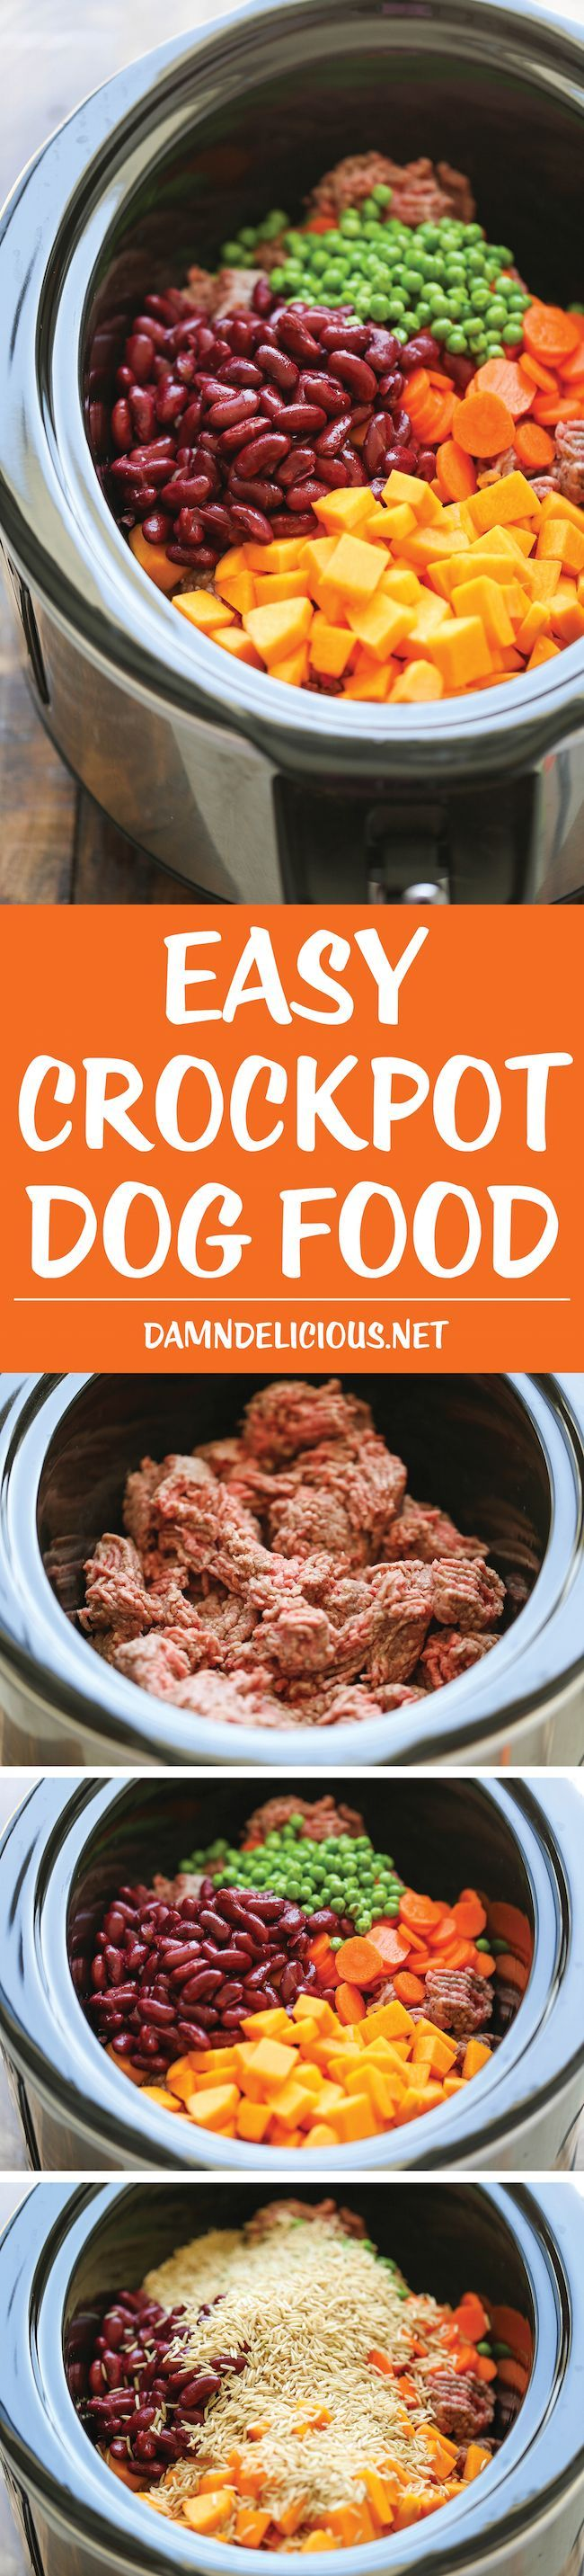 Easy Crockpot Dog Food - DIY dog food can easily be made right in the slow cooker. It's healthier and cheaper than store-bought, and it's freezer-friendly!: